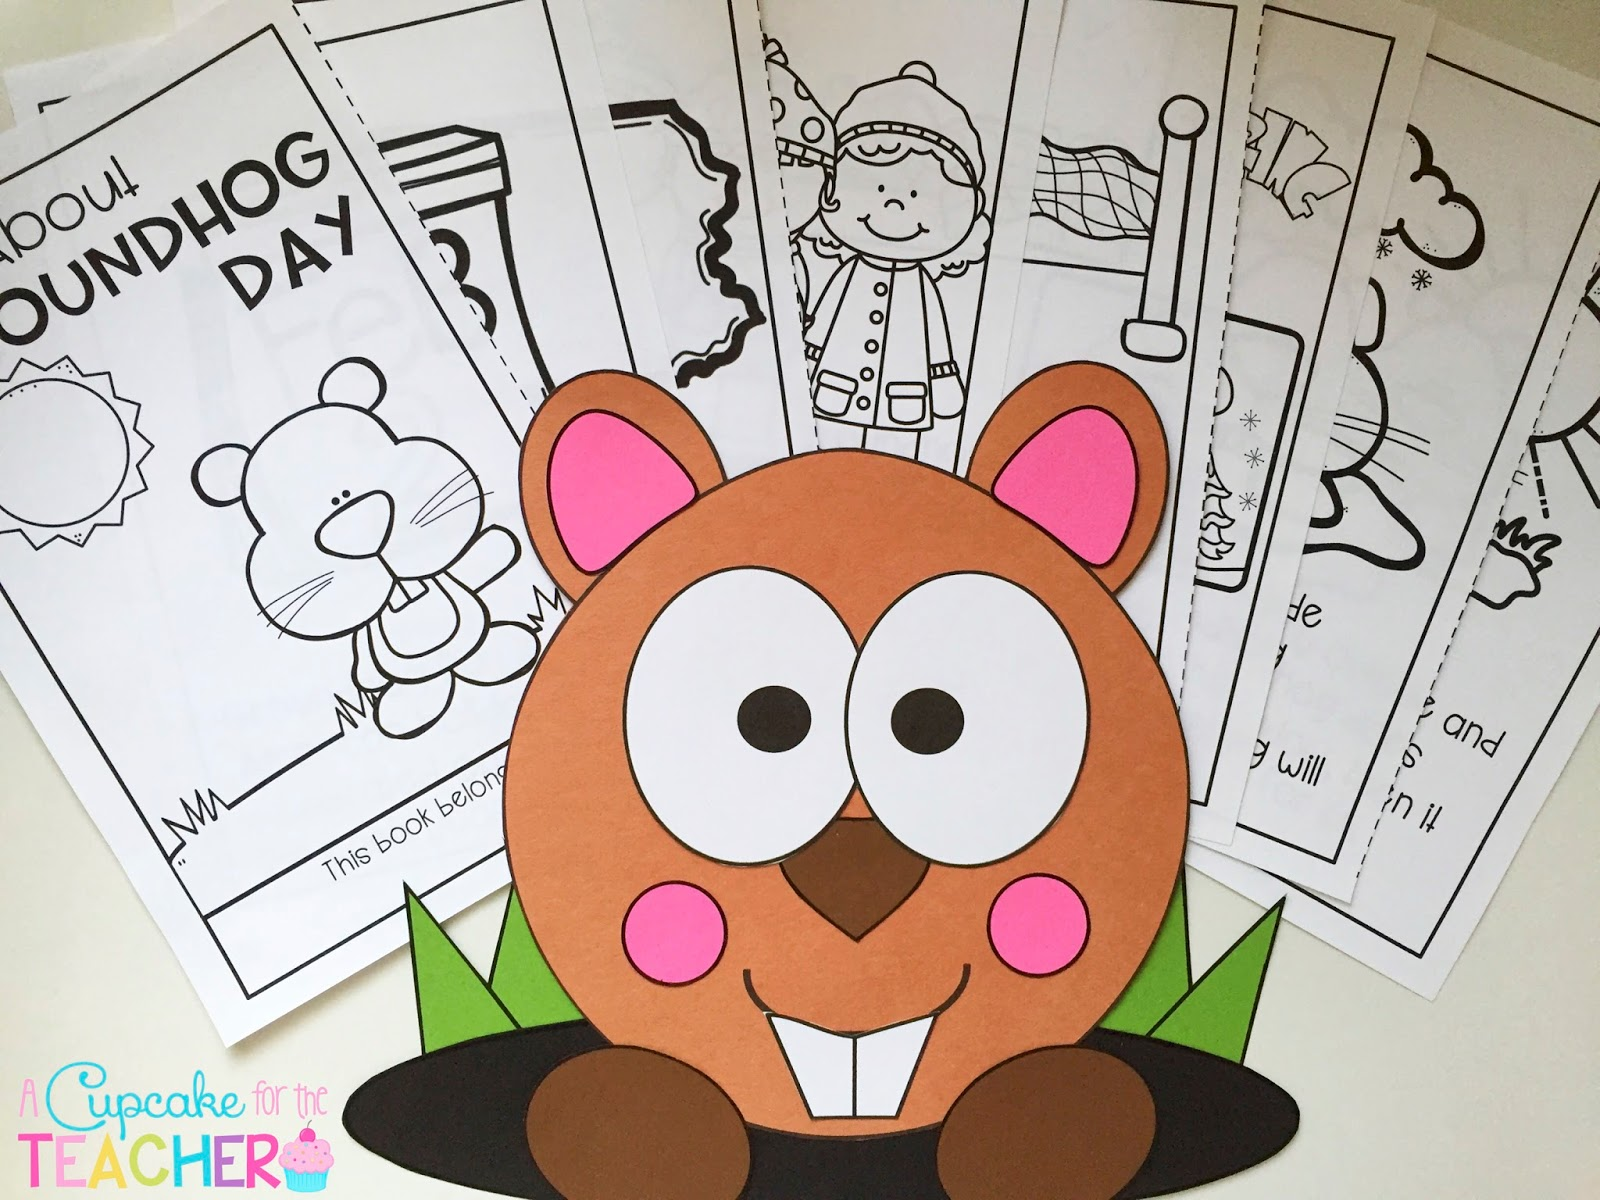 Groundhog day clipart download wallpaper full wallpapers groundhog day ideas a cupcake for the teacher groundhog day ideas m4hsunfo